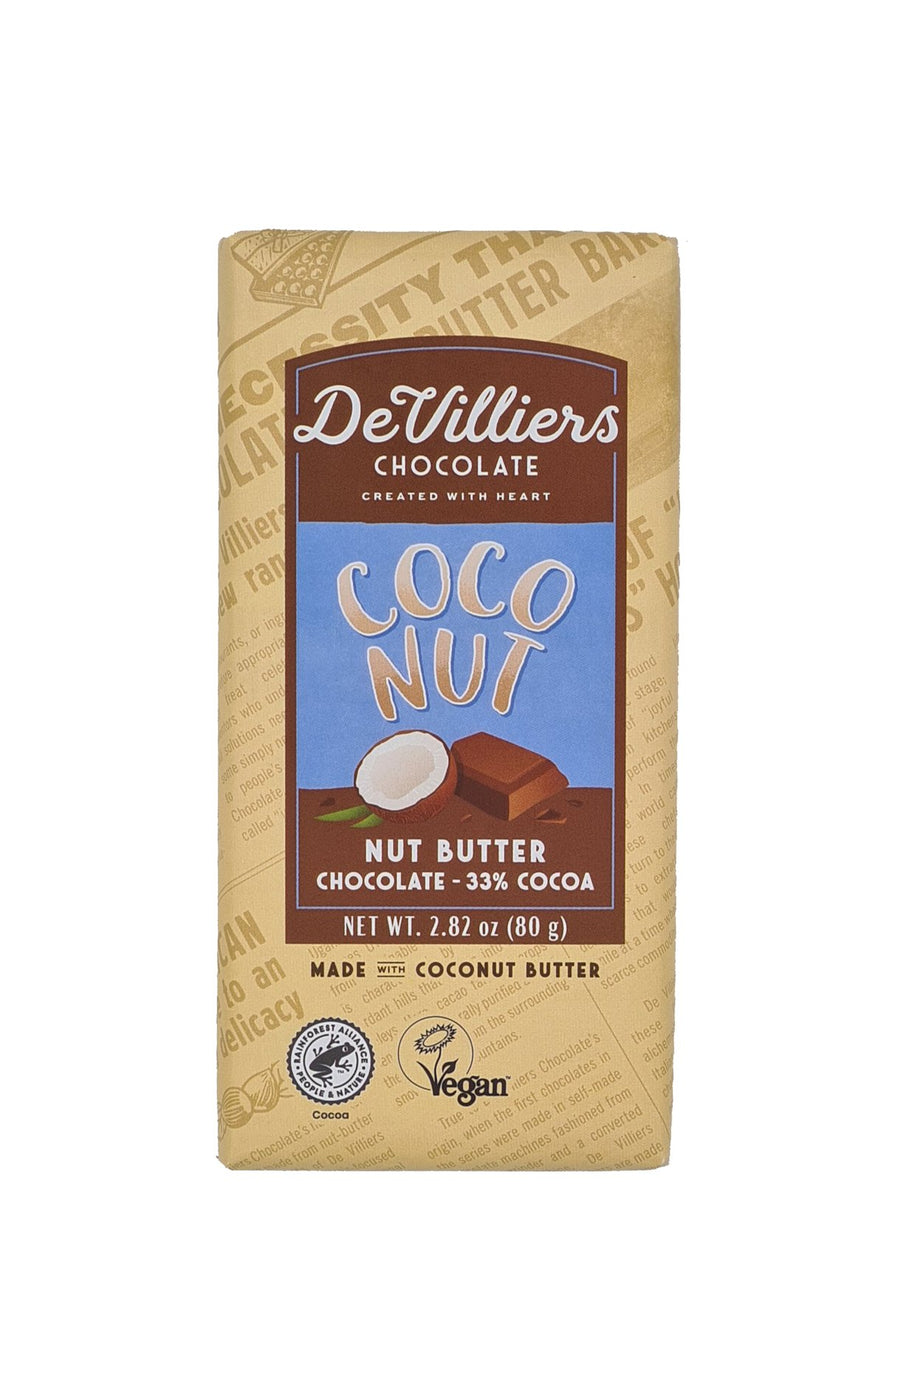 DAIRY-FREE MYLK COCONUT NUT BUTTER CHOCOLATE BAR - de villiers chocolate us